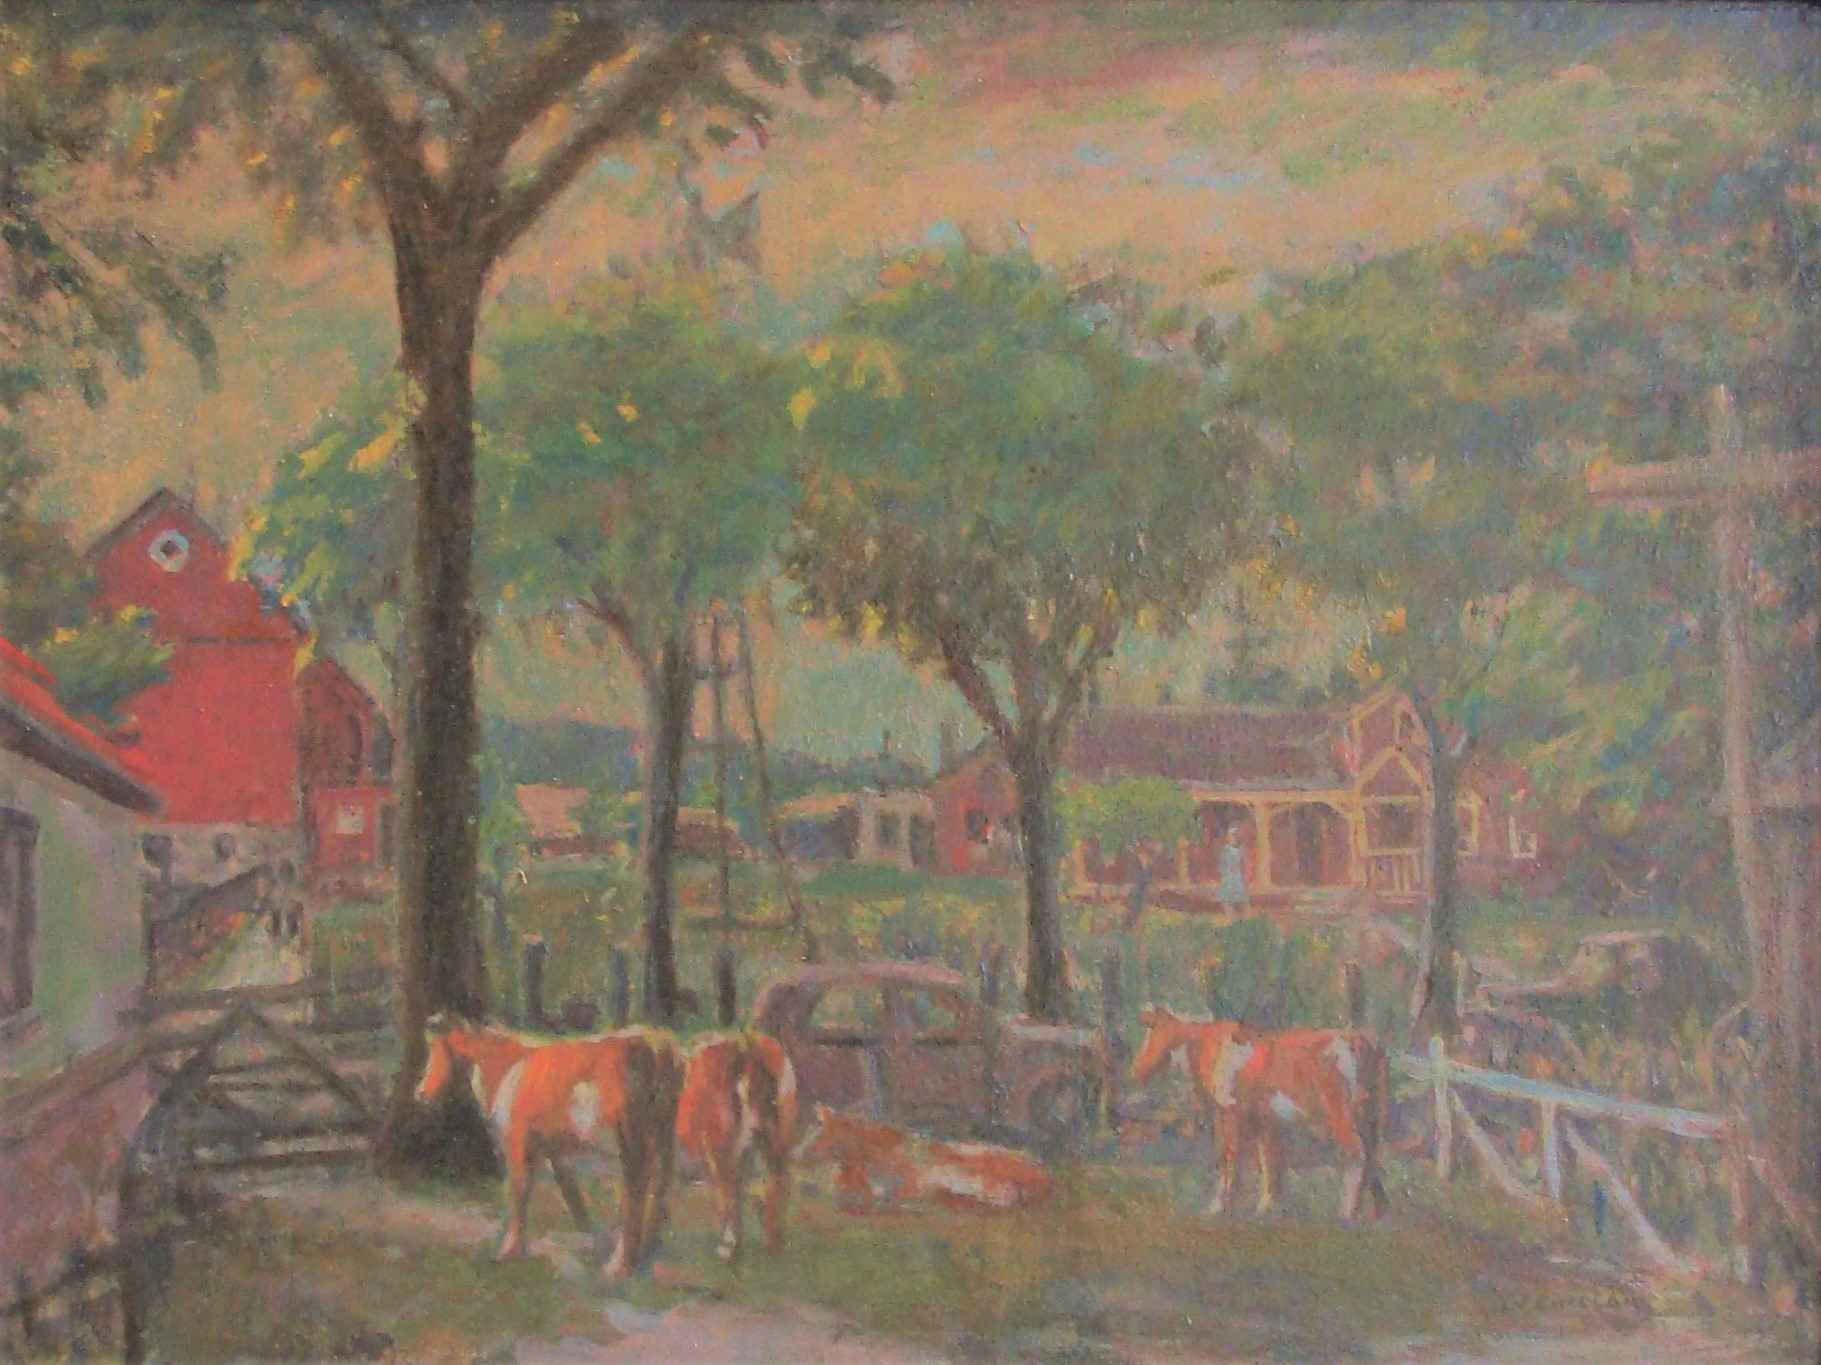 Farm in the Country by Mr. Gerrit Sinclair - Masterpiece Online